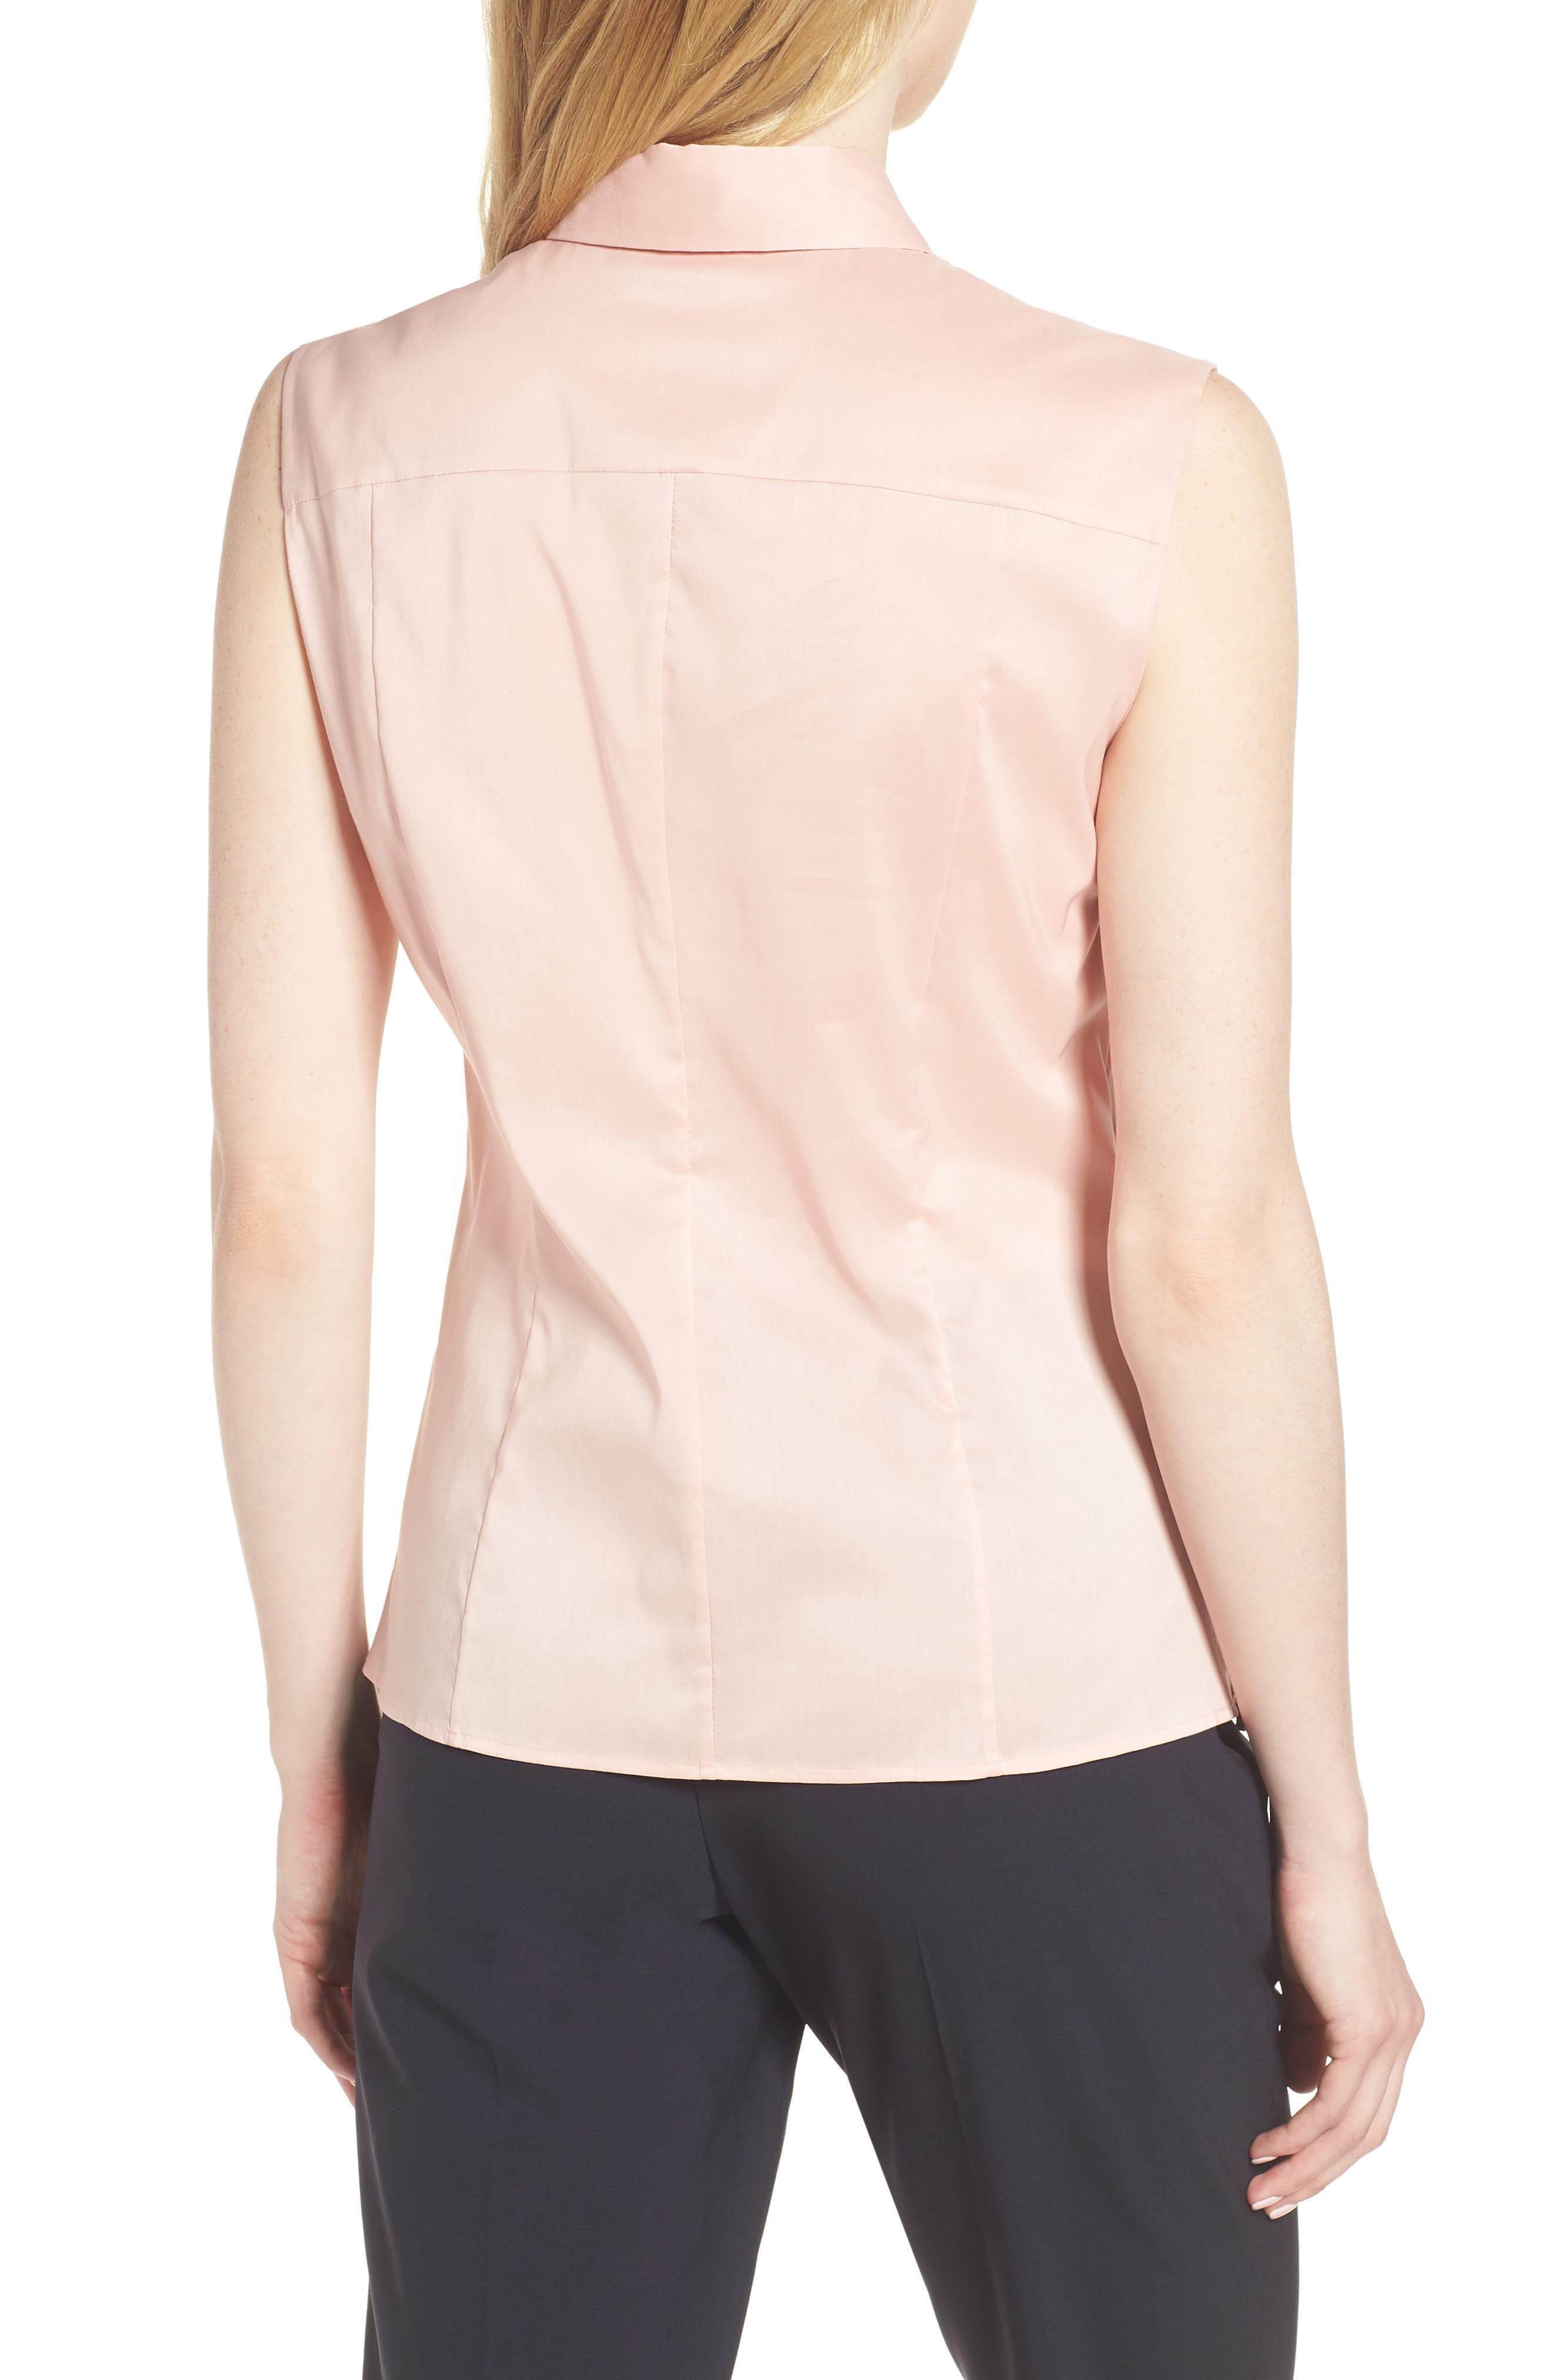 Bashiva Stretch Poplin Blouse,                             Alternate thumbnail 2, color,                             Blush